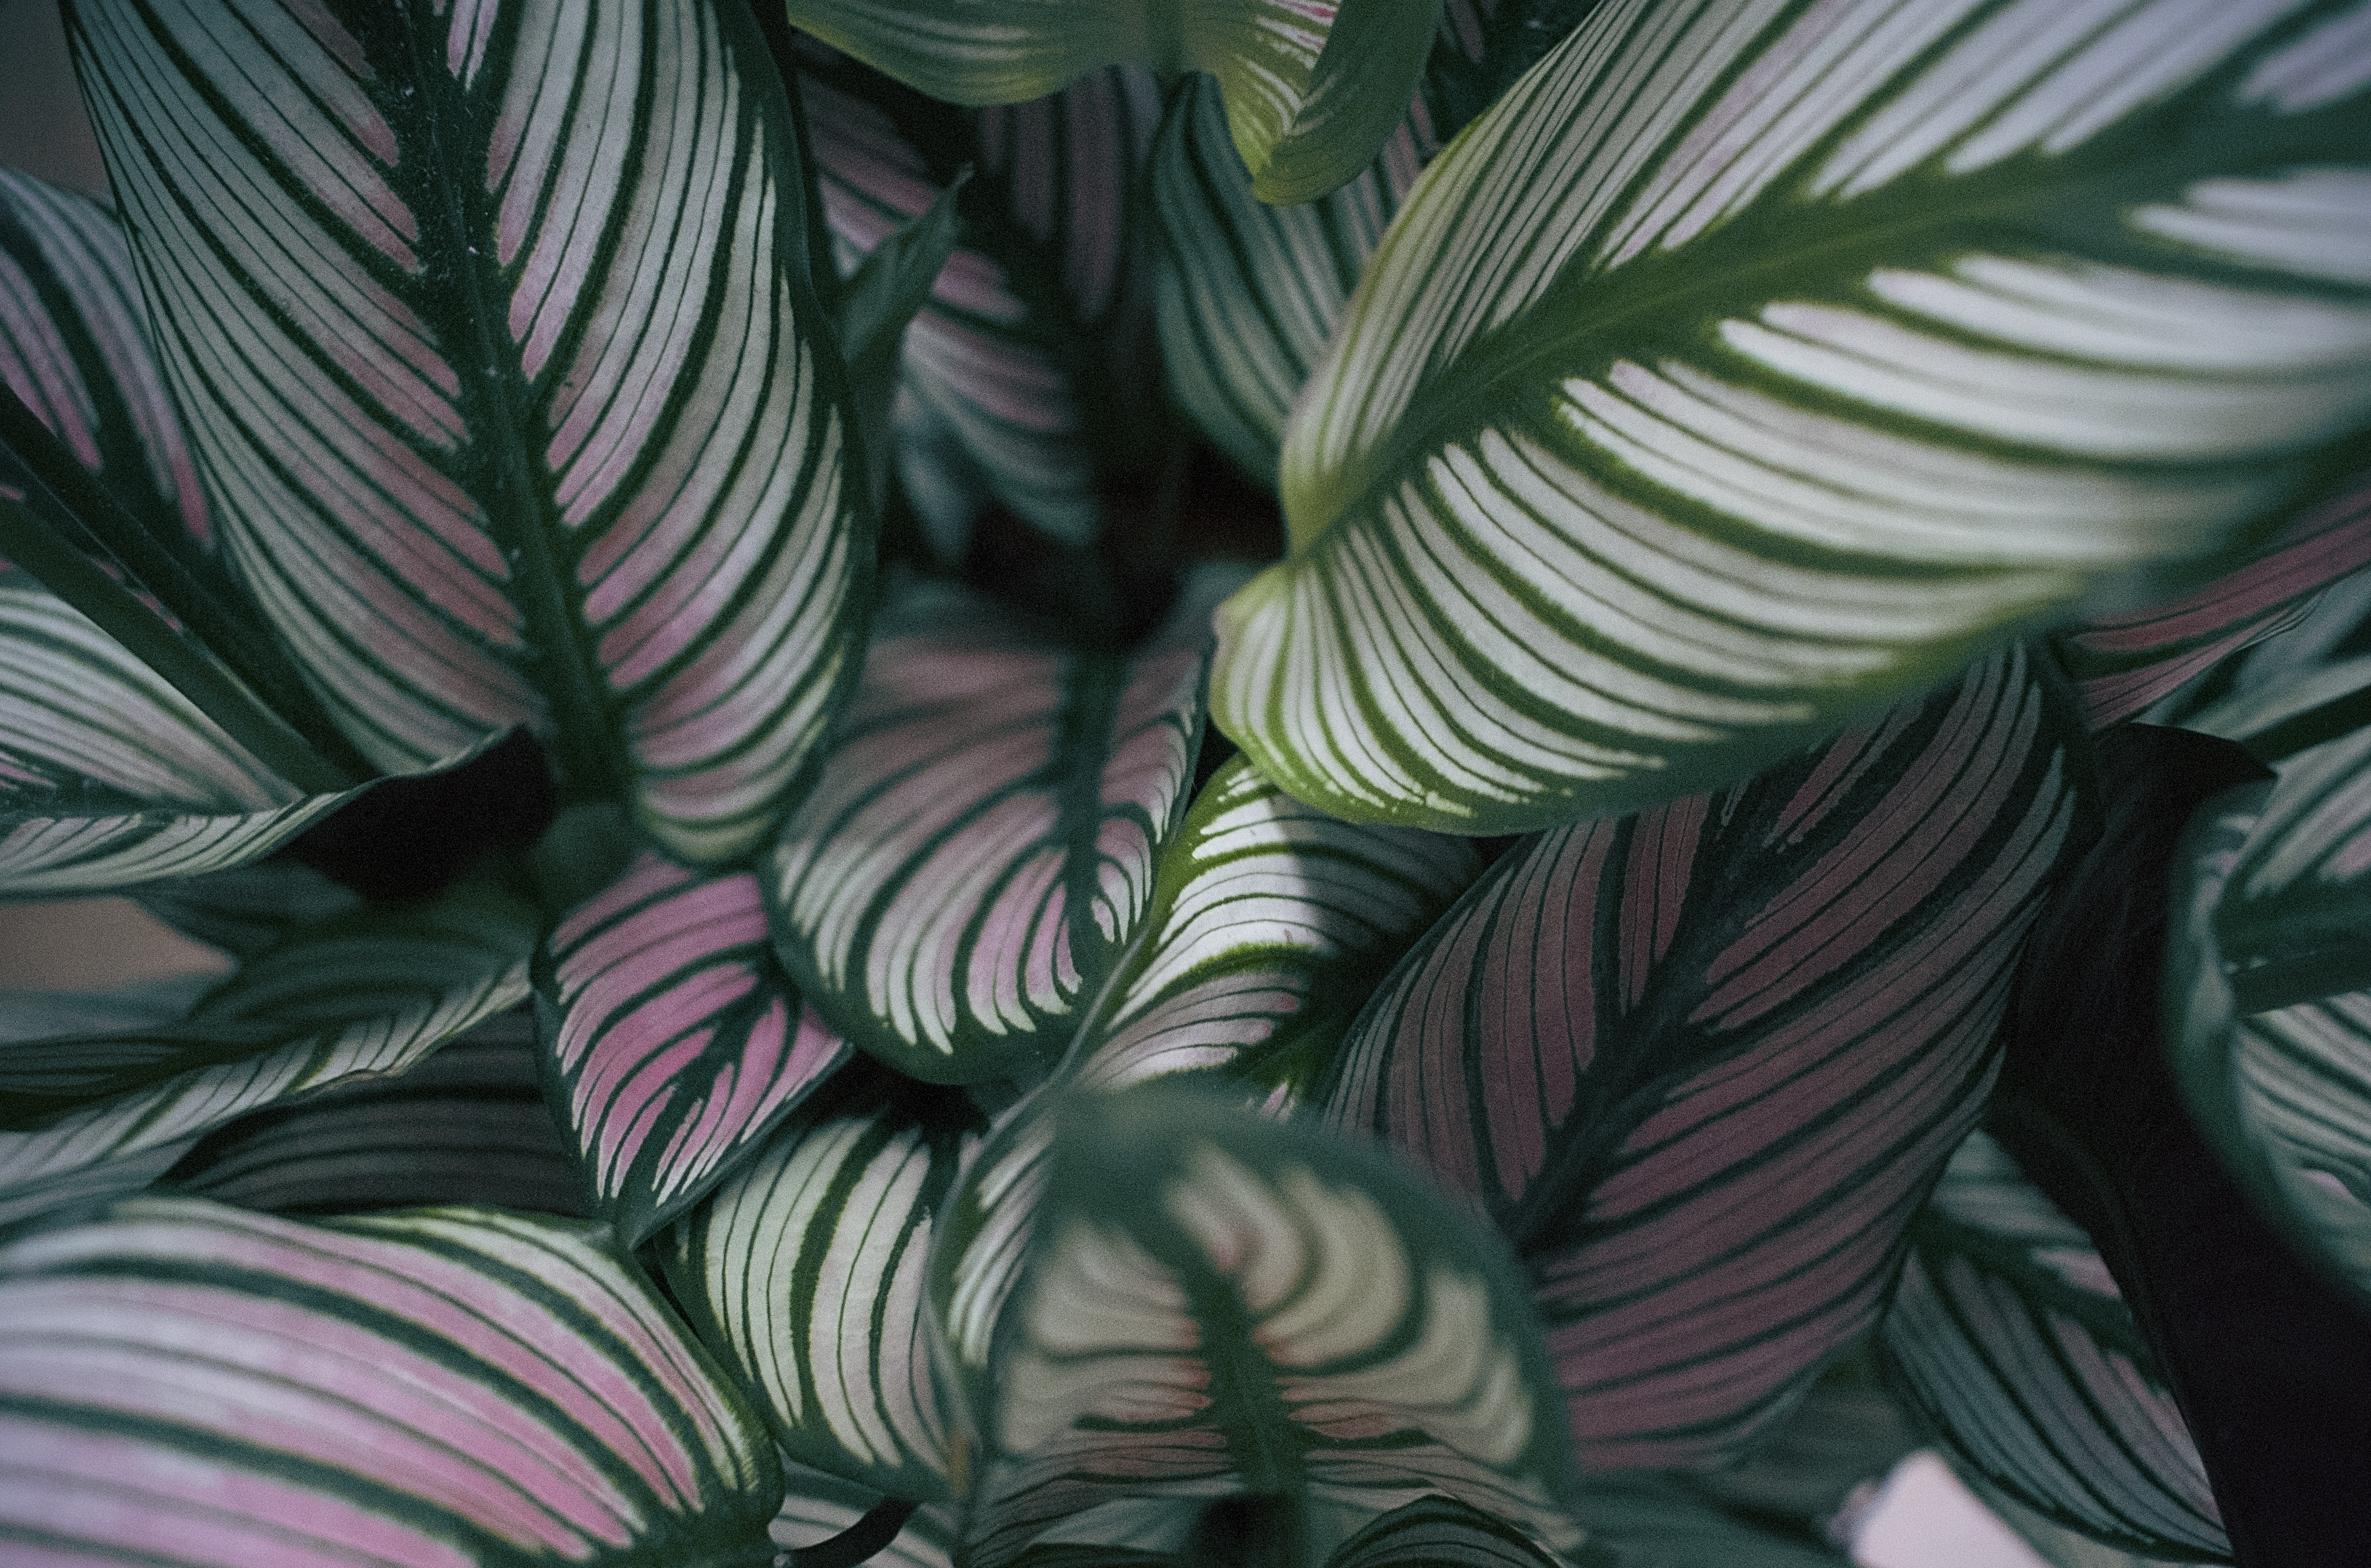 How To Not Kill Your Calathea Prayer Plant Marantaceae Care Of Greens And Fluff